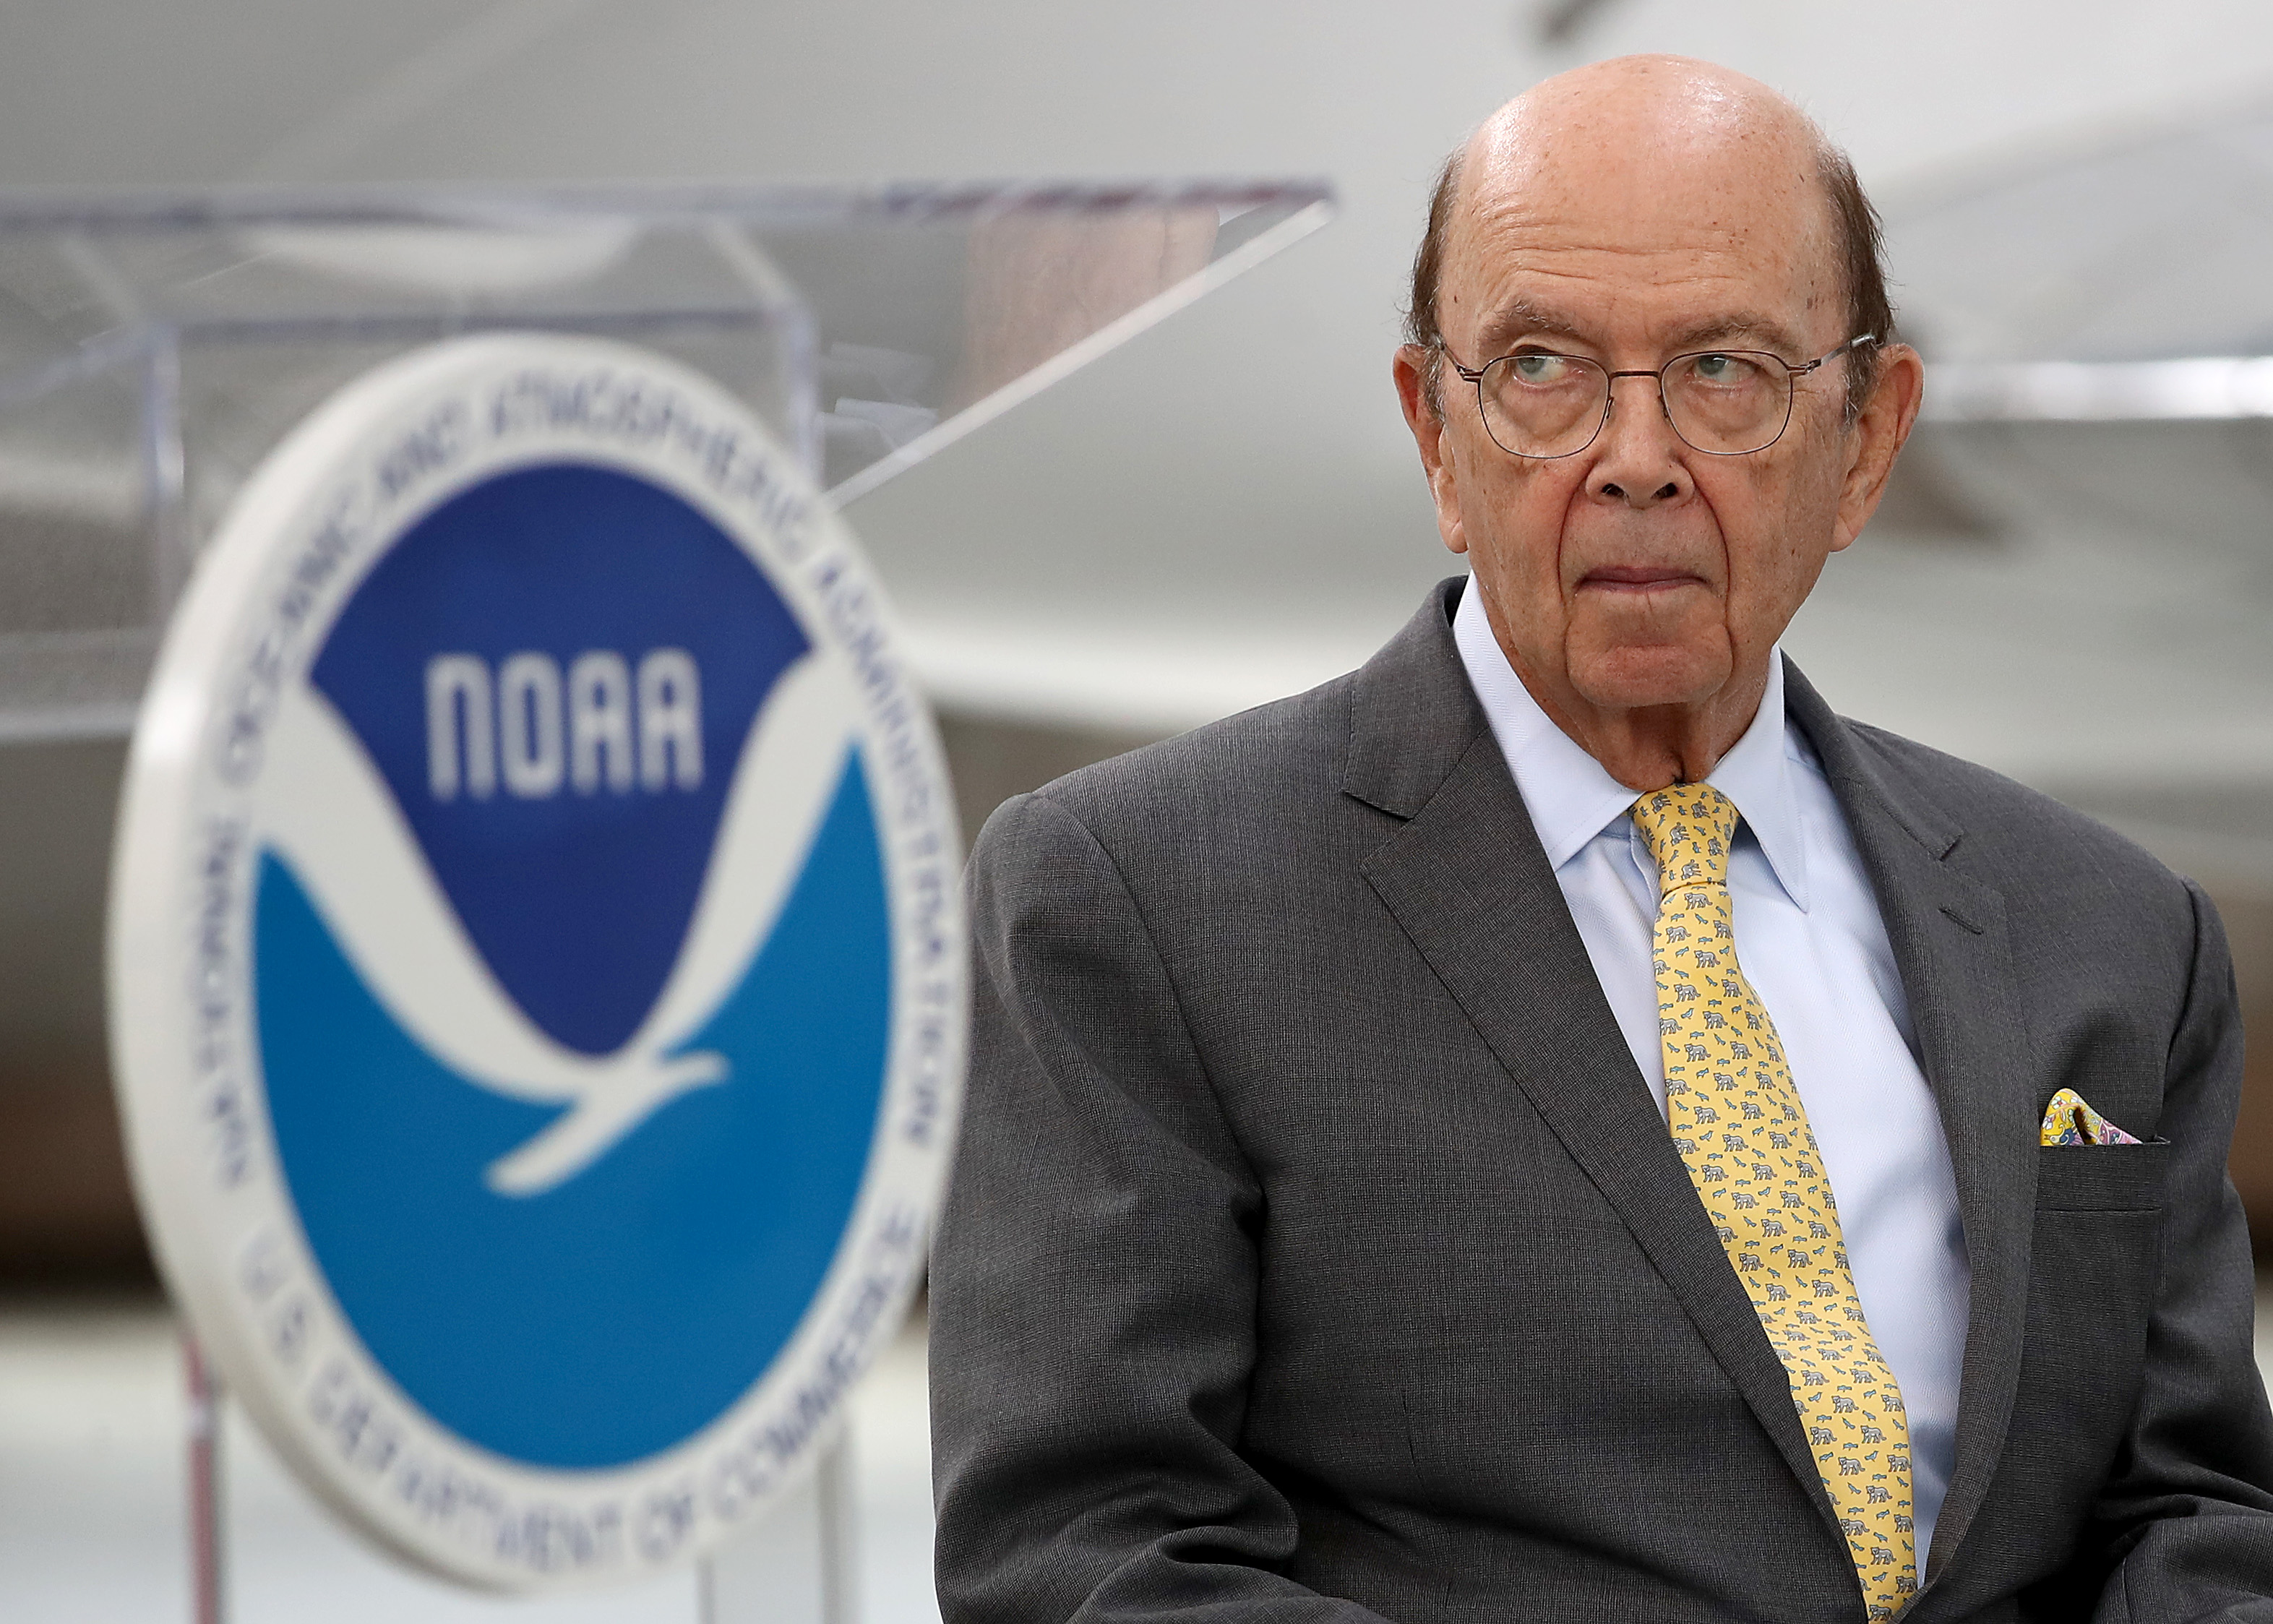 Ross, in a grey suit and yellow tie, frowns in front of the National Oceanic and Atmospheric Administration's logo.